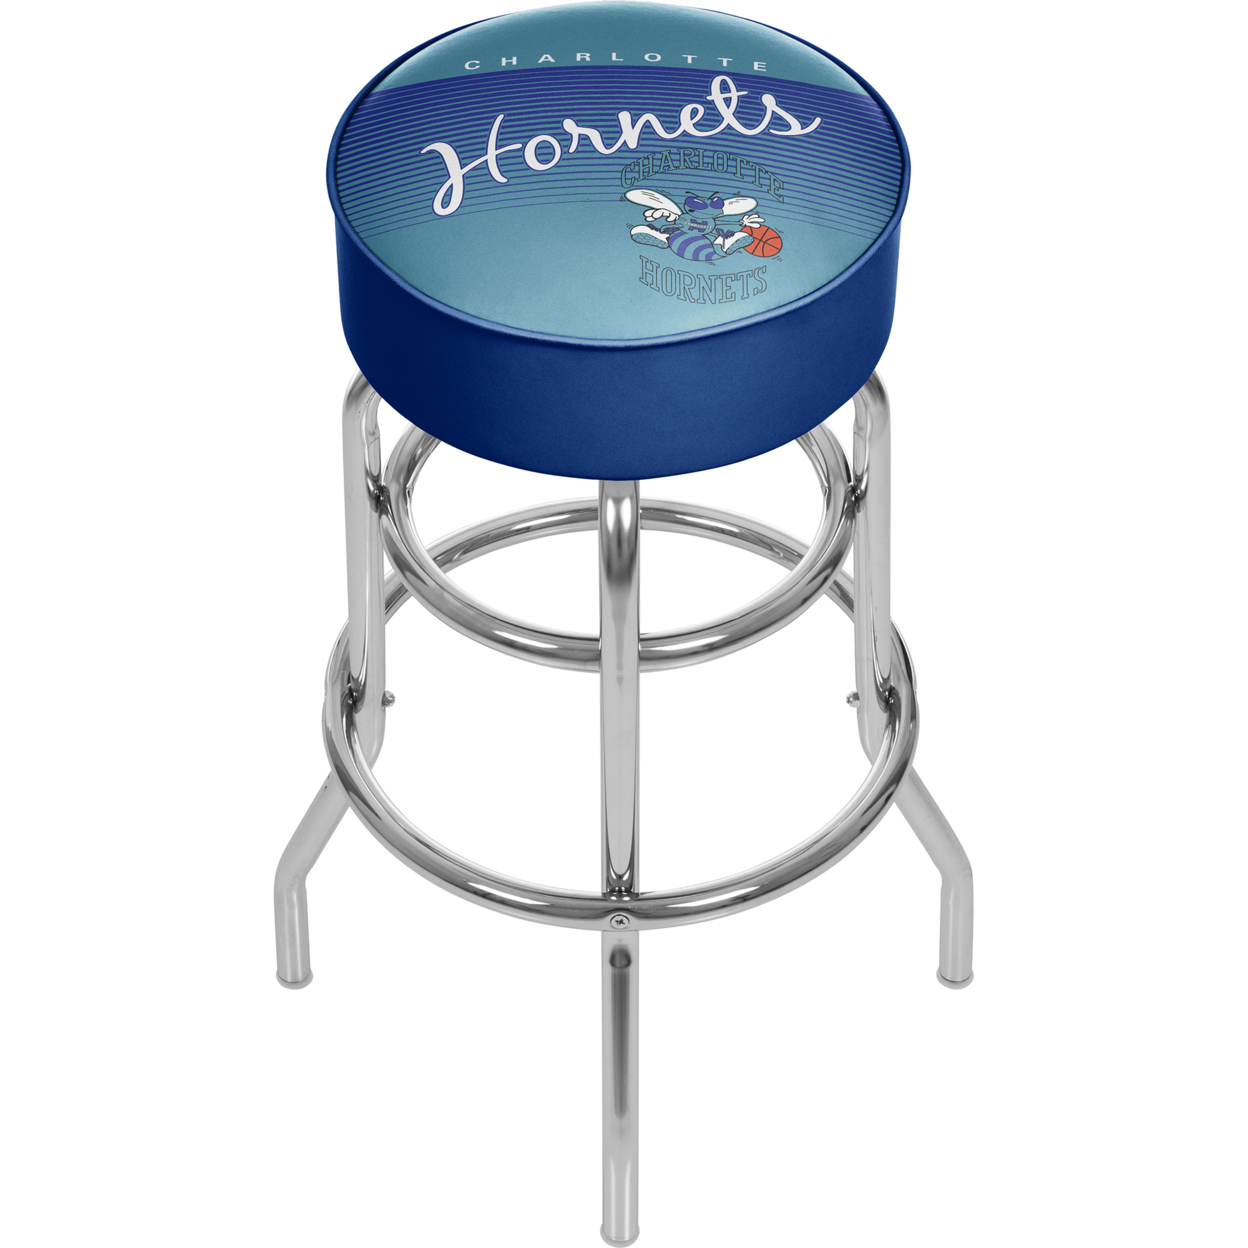 Charlotte Hornets NBA Hardwood Classics Padded Swivel Stool фанатская атрибутика nike curry nba